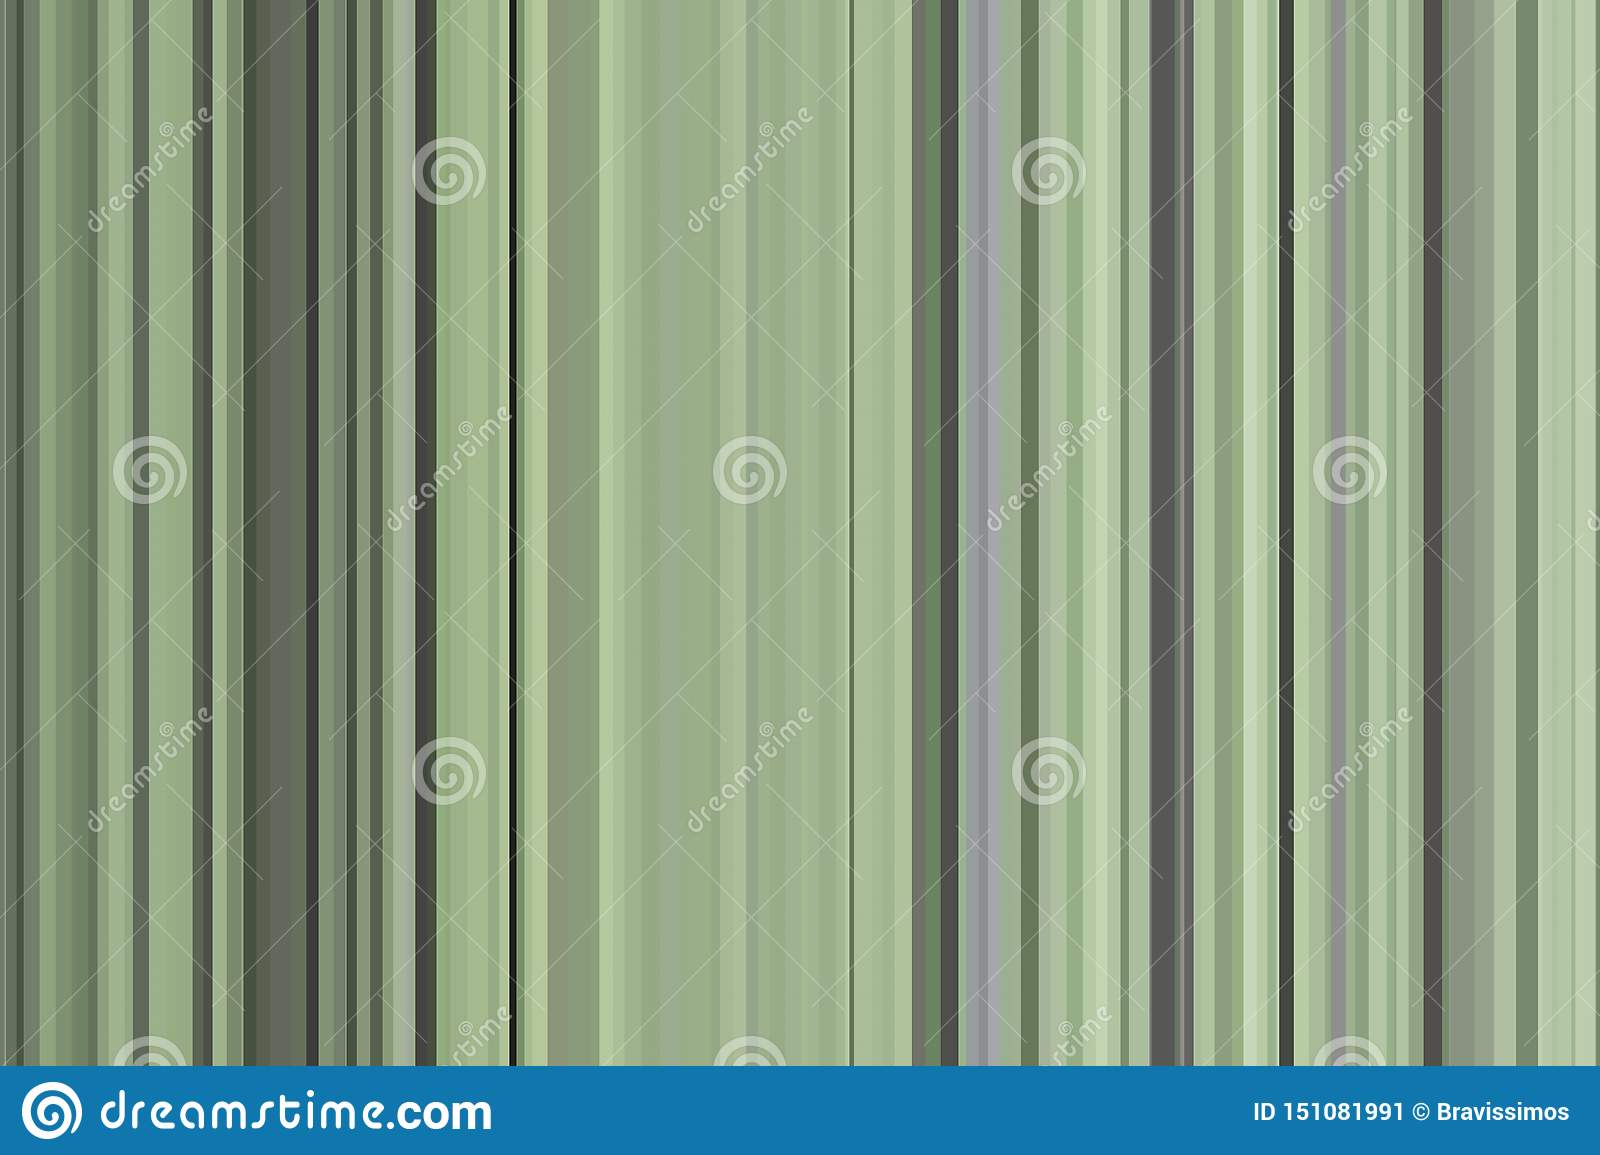 Background Olive Abstract Backdrop Graphic Wallpaper Layout